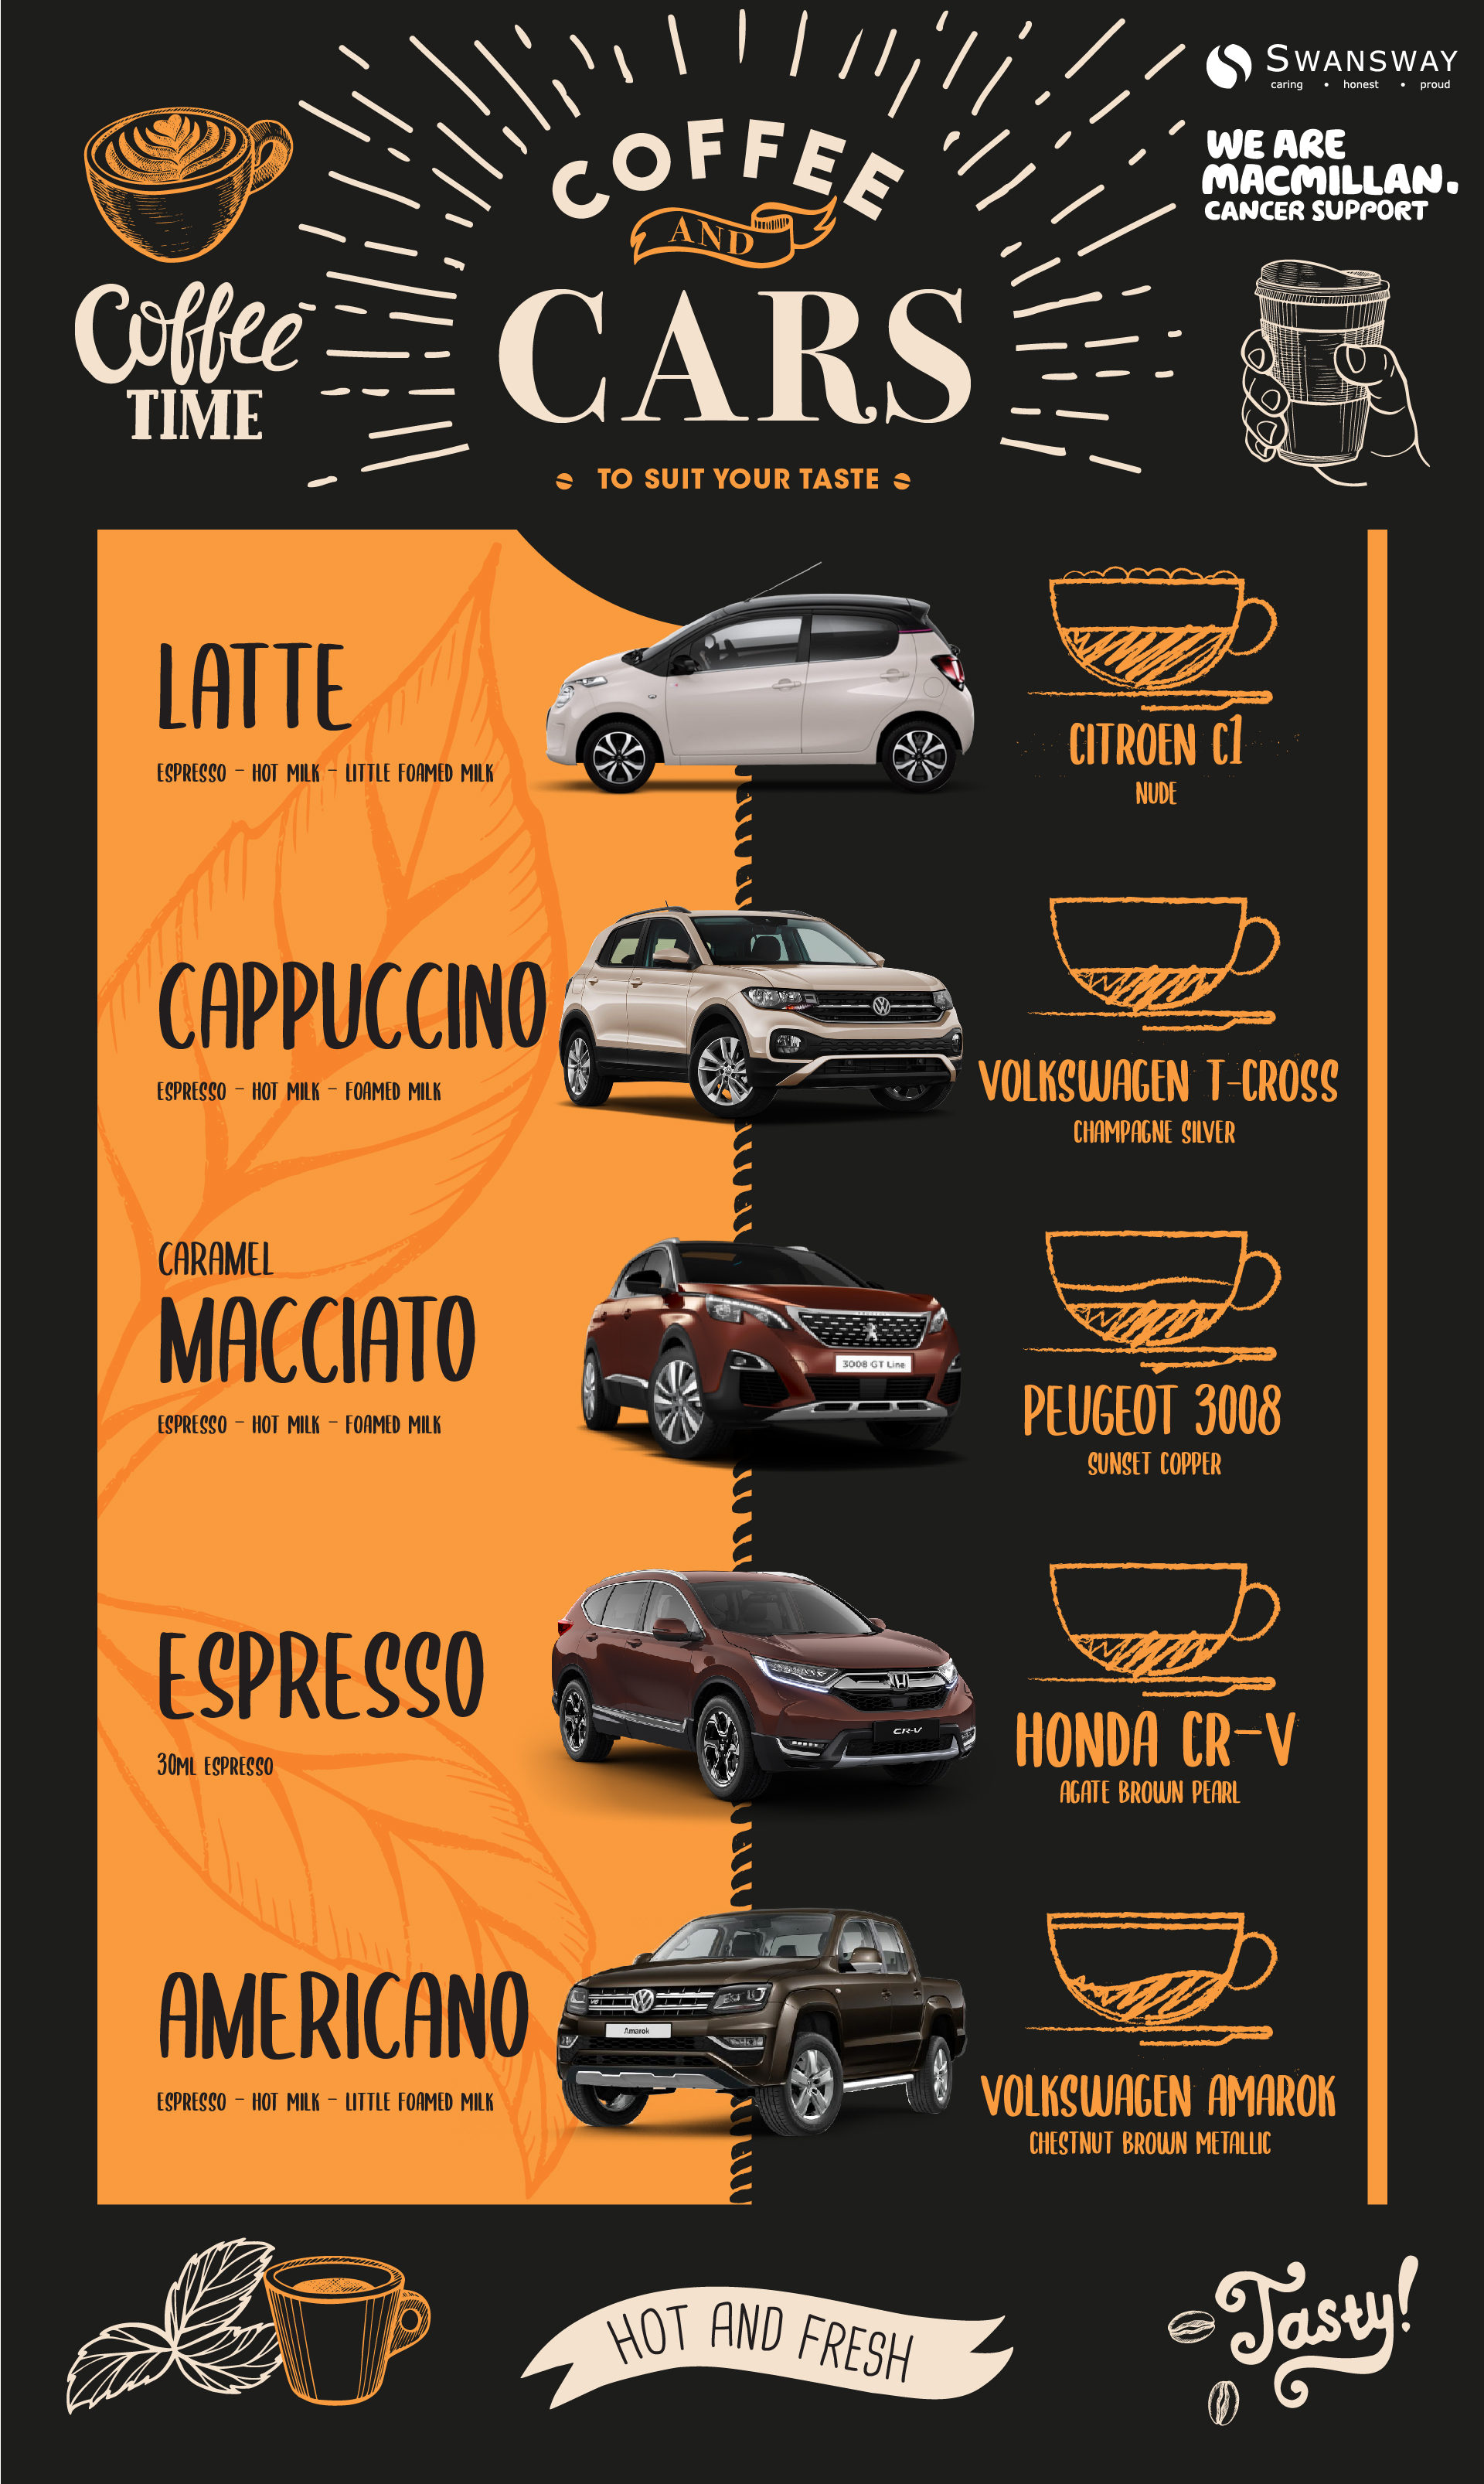 cars compared to coffee